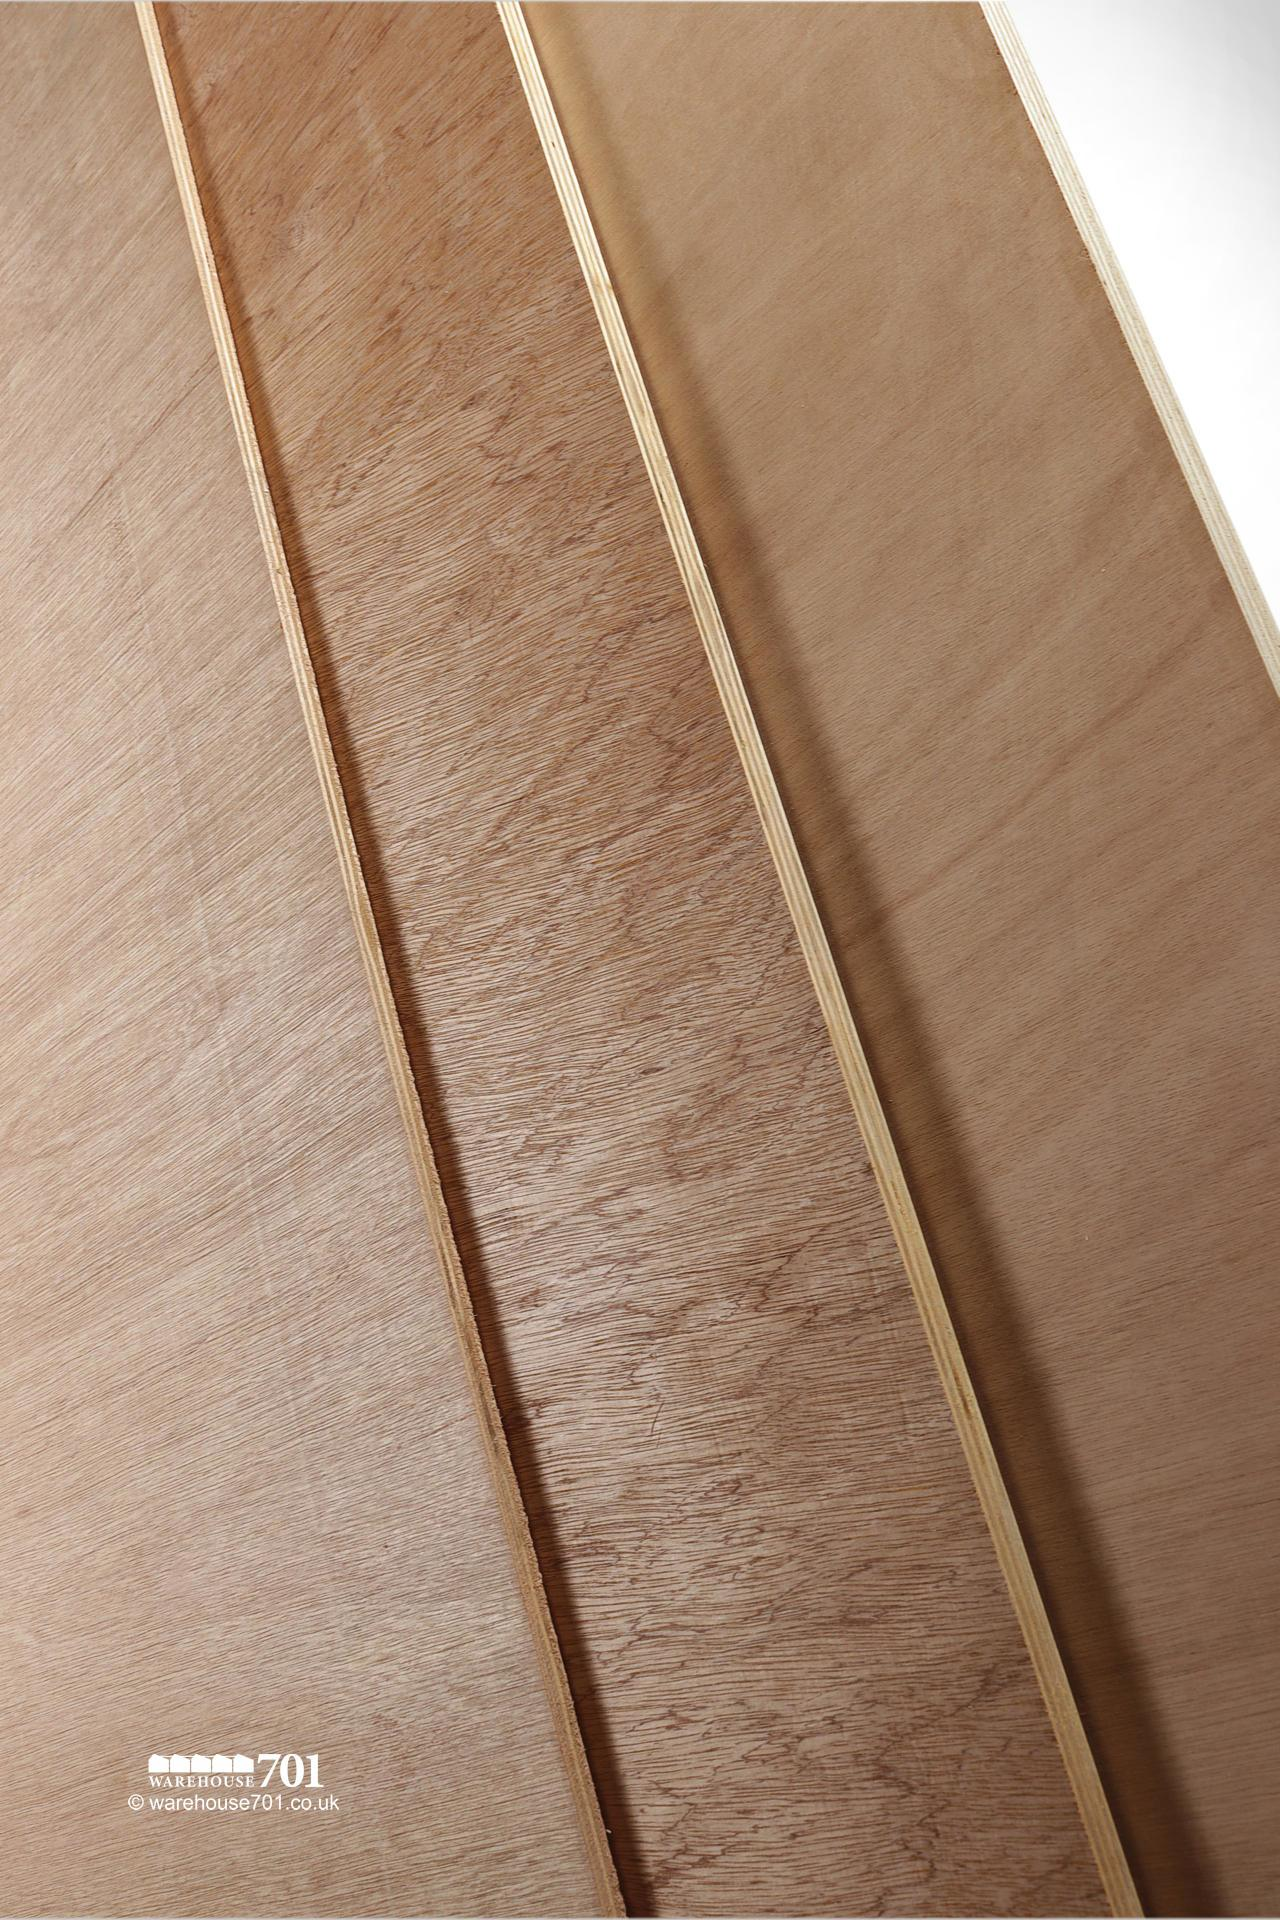 New Xtraplex® HARDWOOD Plywood sheet in 9mm, 12mm and 18mm #4